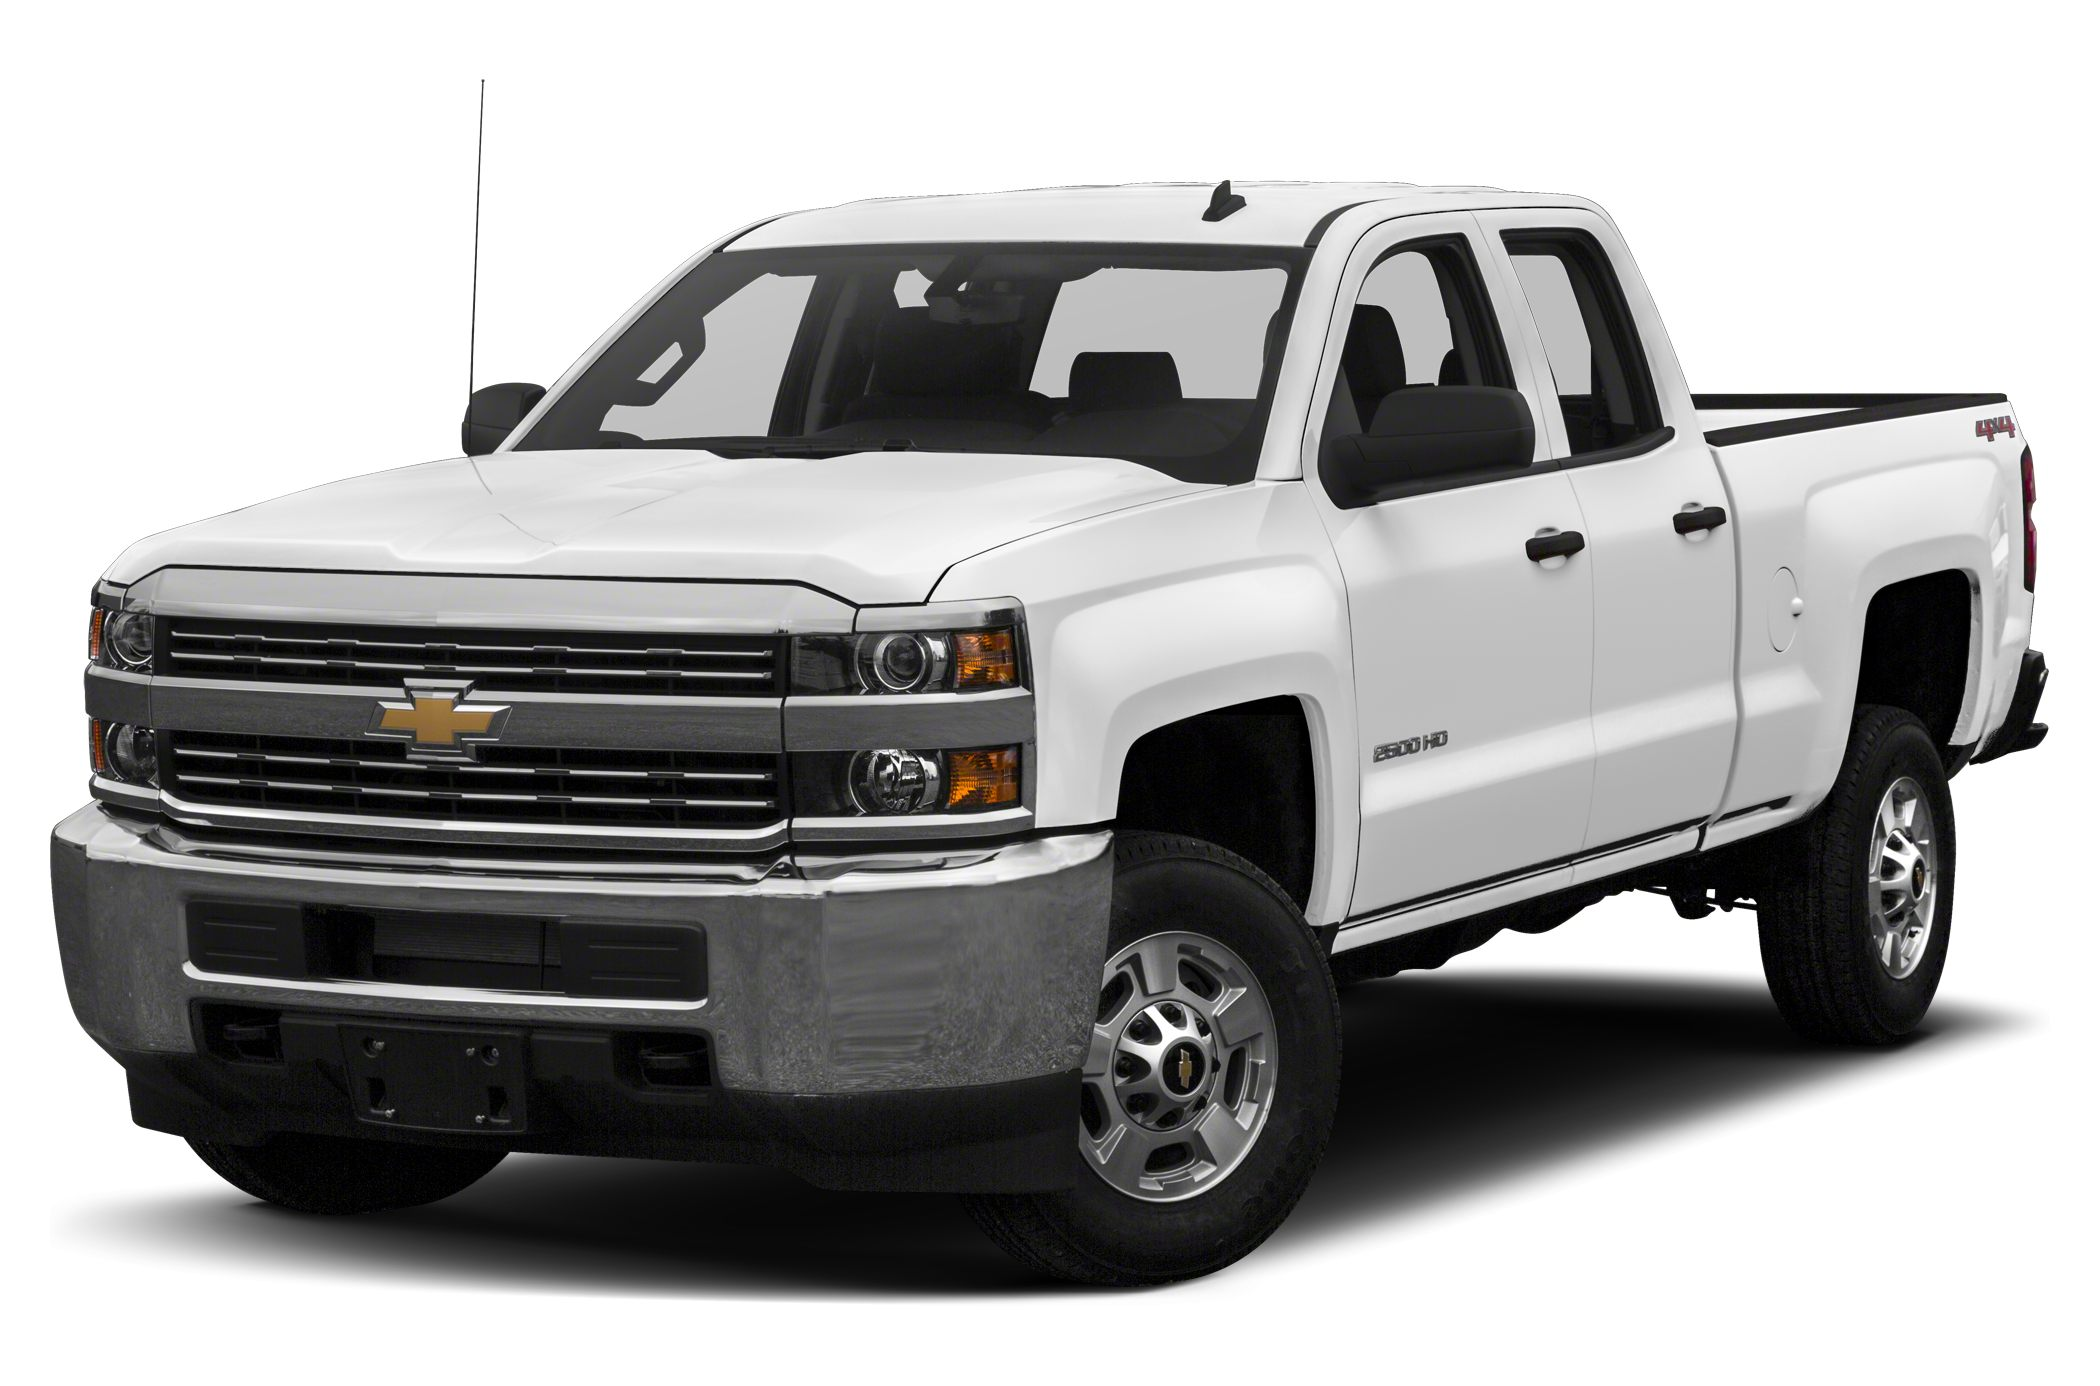 2015 Chevrolet Silverado 2500 LTZ Crew Cab Pickup for sale in Los Lunas for $60,445 with 0 miles